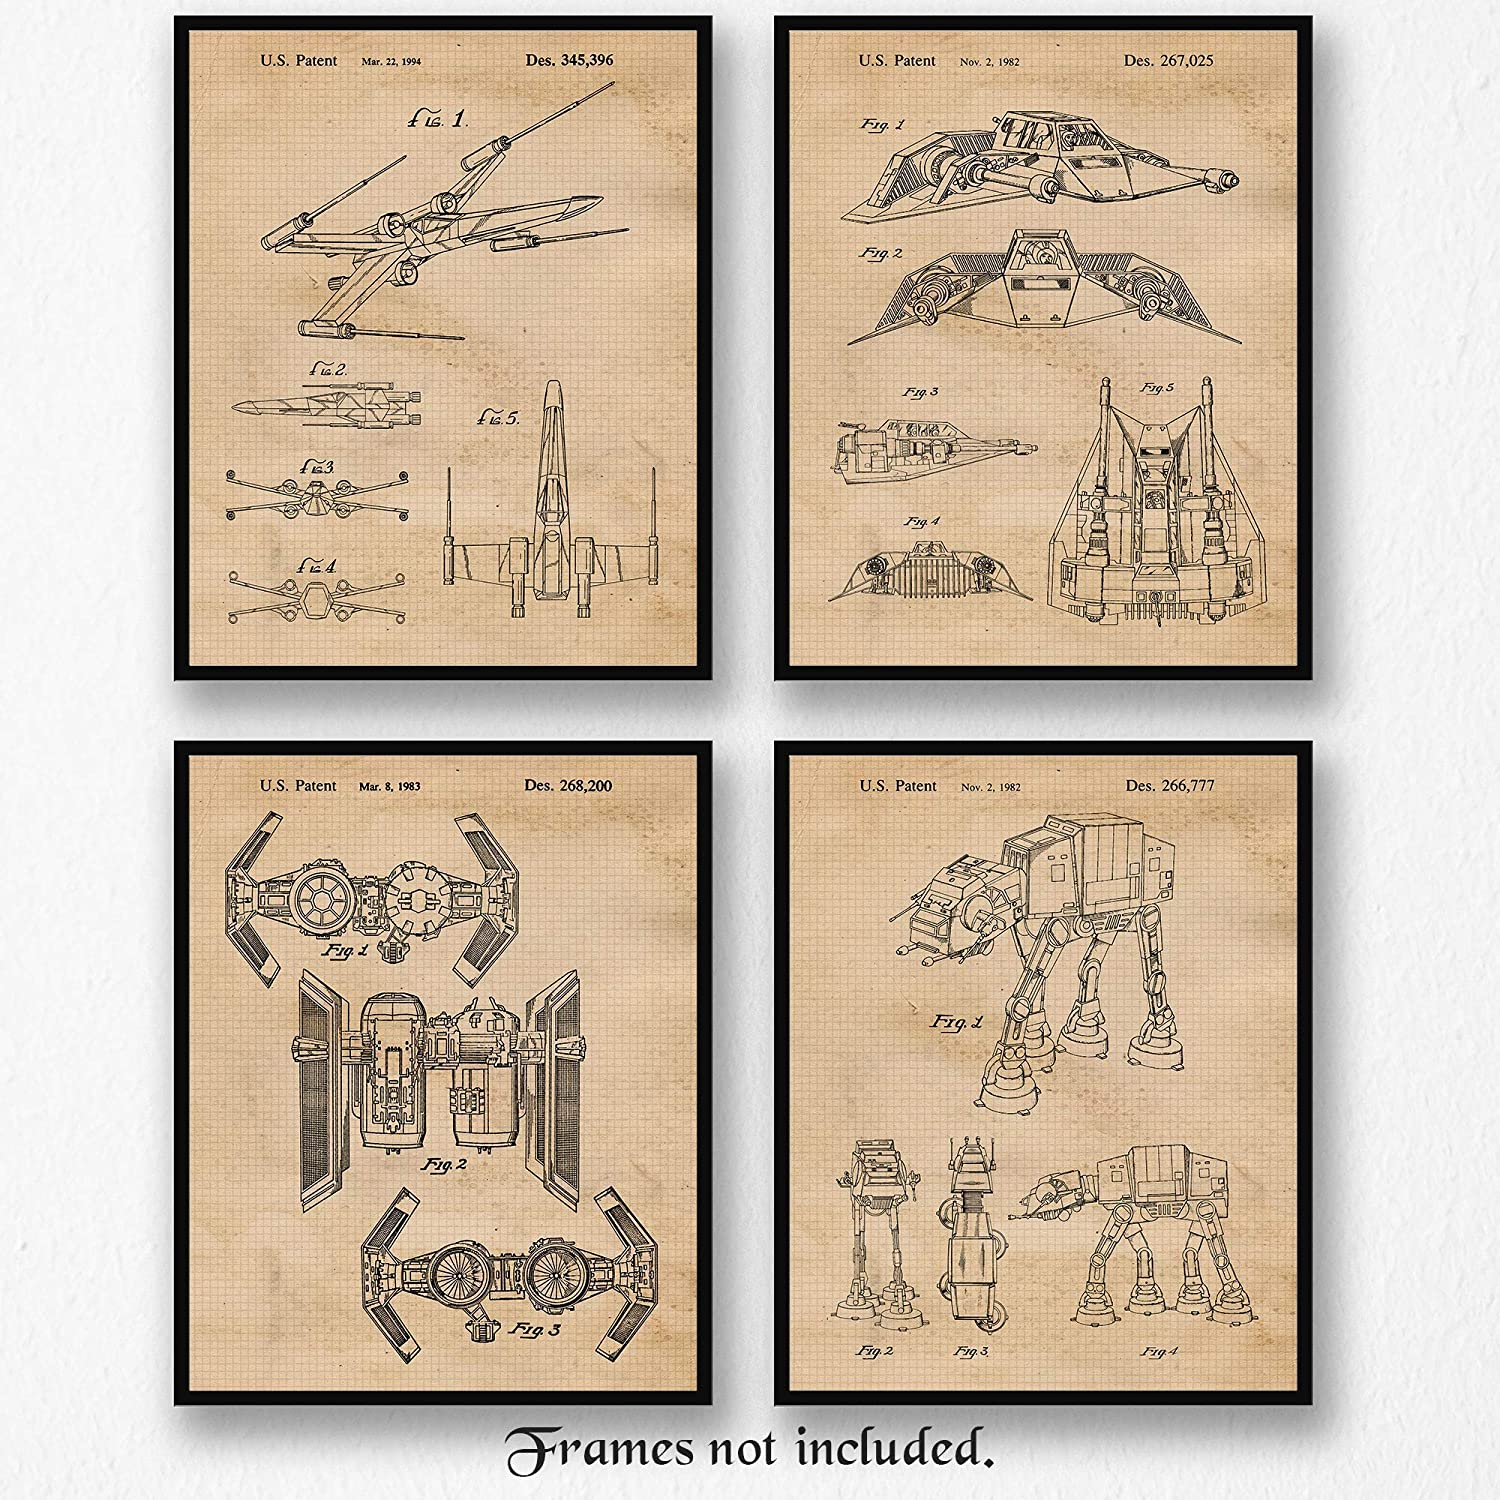 Original Star Wars Patent Poster Prints, Set of 4 Photos (8x10) Unframed, Great Wall Art Decor Gifts Under 20 for Home, Office, Studio, Garage, Man Cave, Shop, Student, Teacher, Comic-Con & Movies Fan